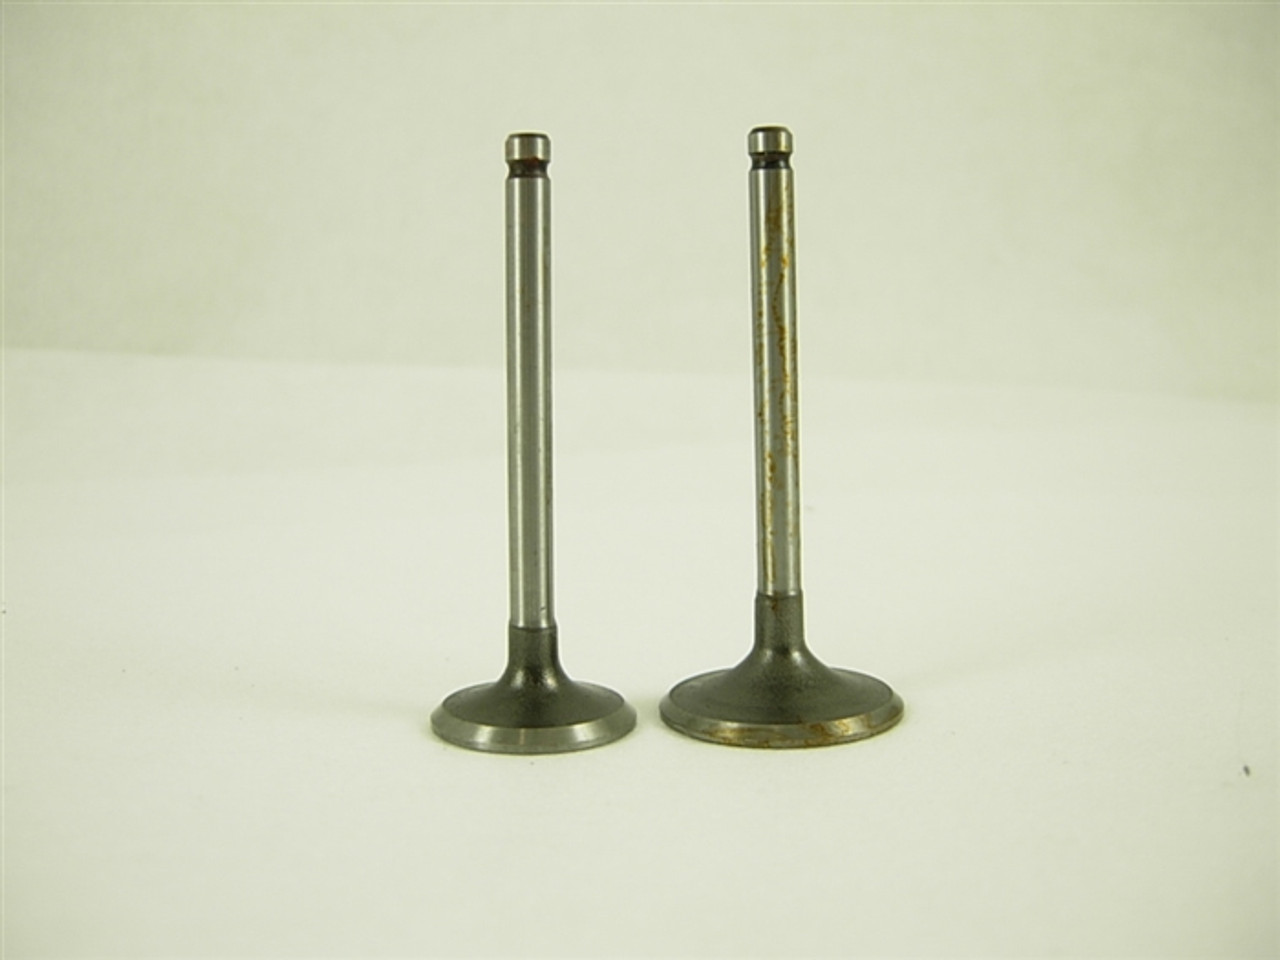 INTAKE AND EXHAUST VALVE SET 11524-A85-12